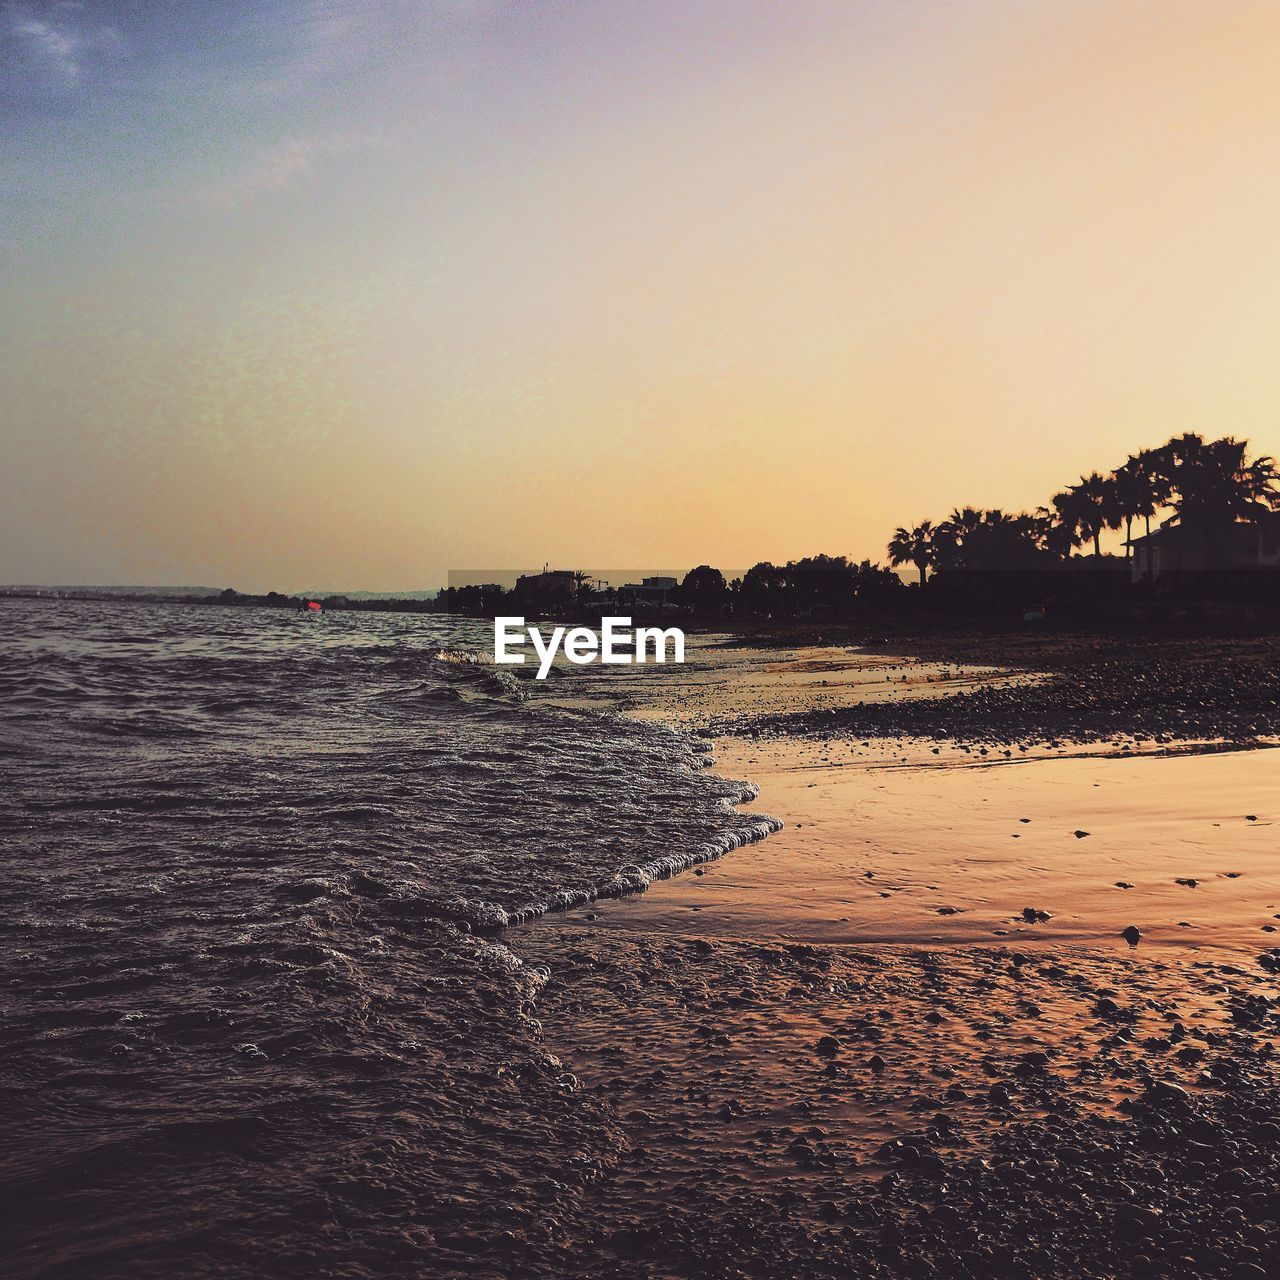 sky, water, sea, scenics - nature, beauty in nature, beach, land, tranquility, sunset, tranquil scene, nature, clear sky, no people, horizon, tree, copy space, idyllic, horizon over water, motion, outdoors